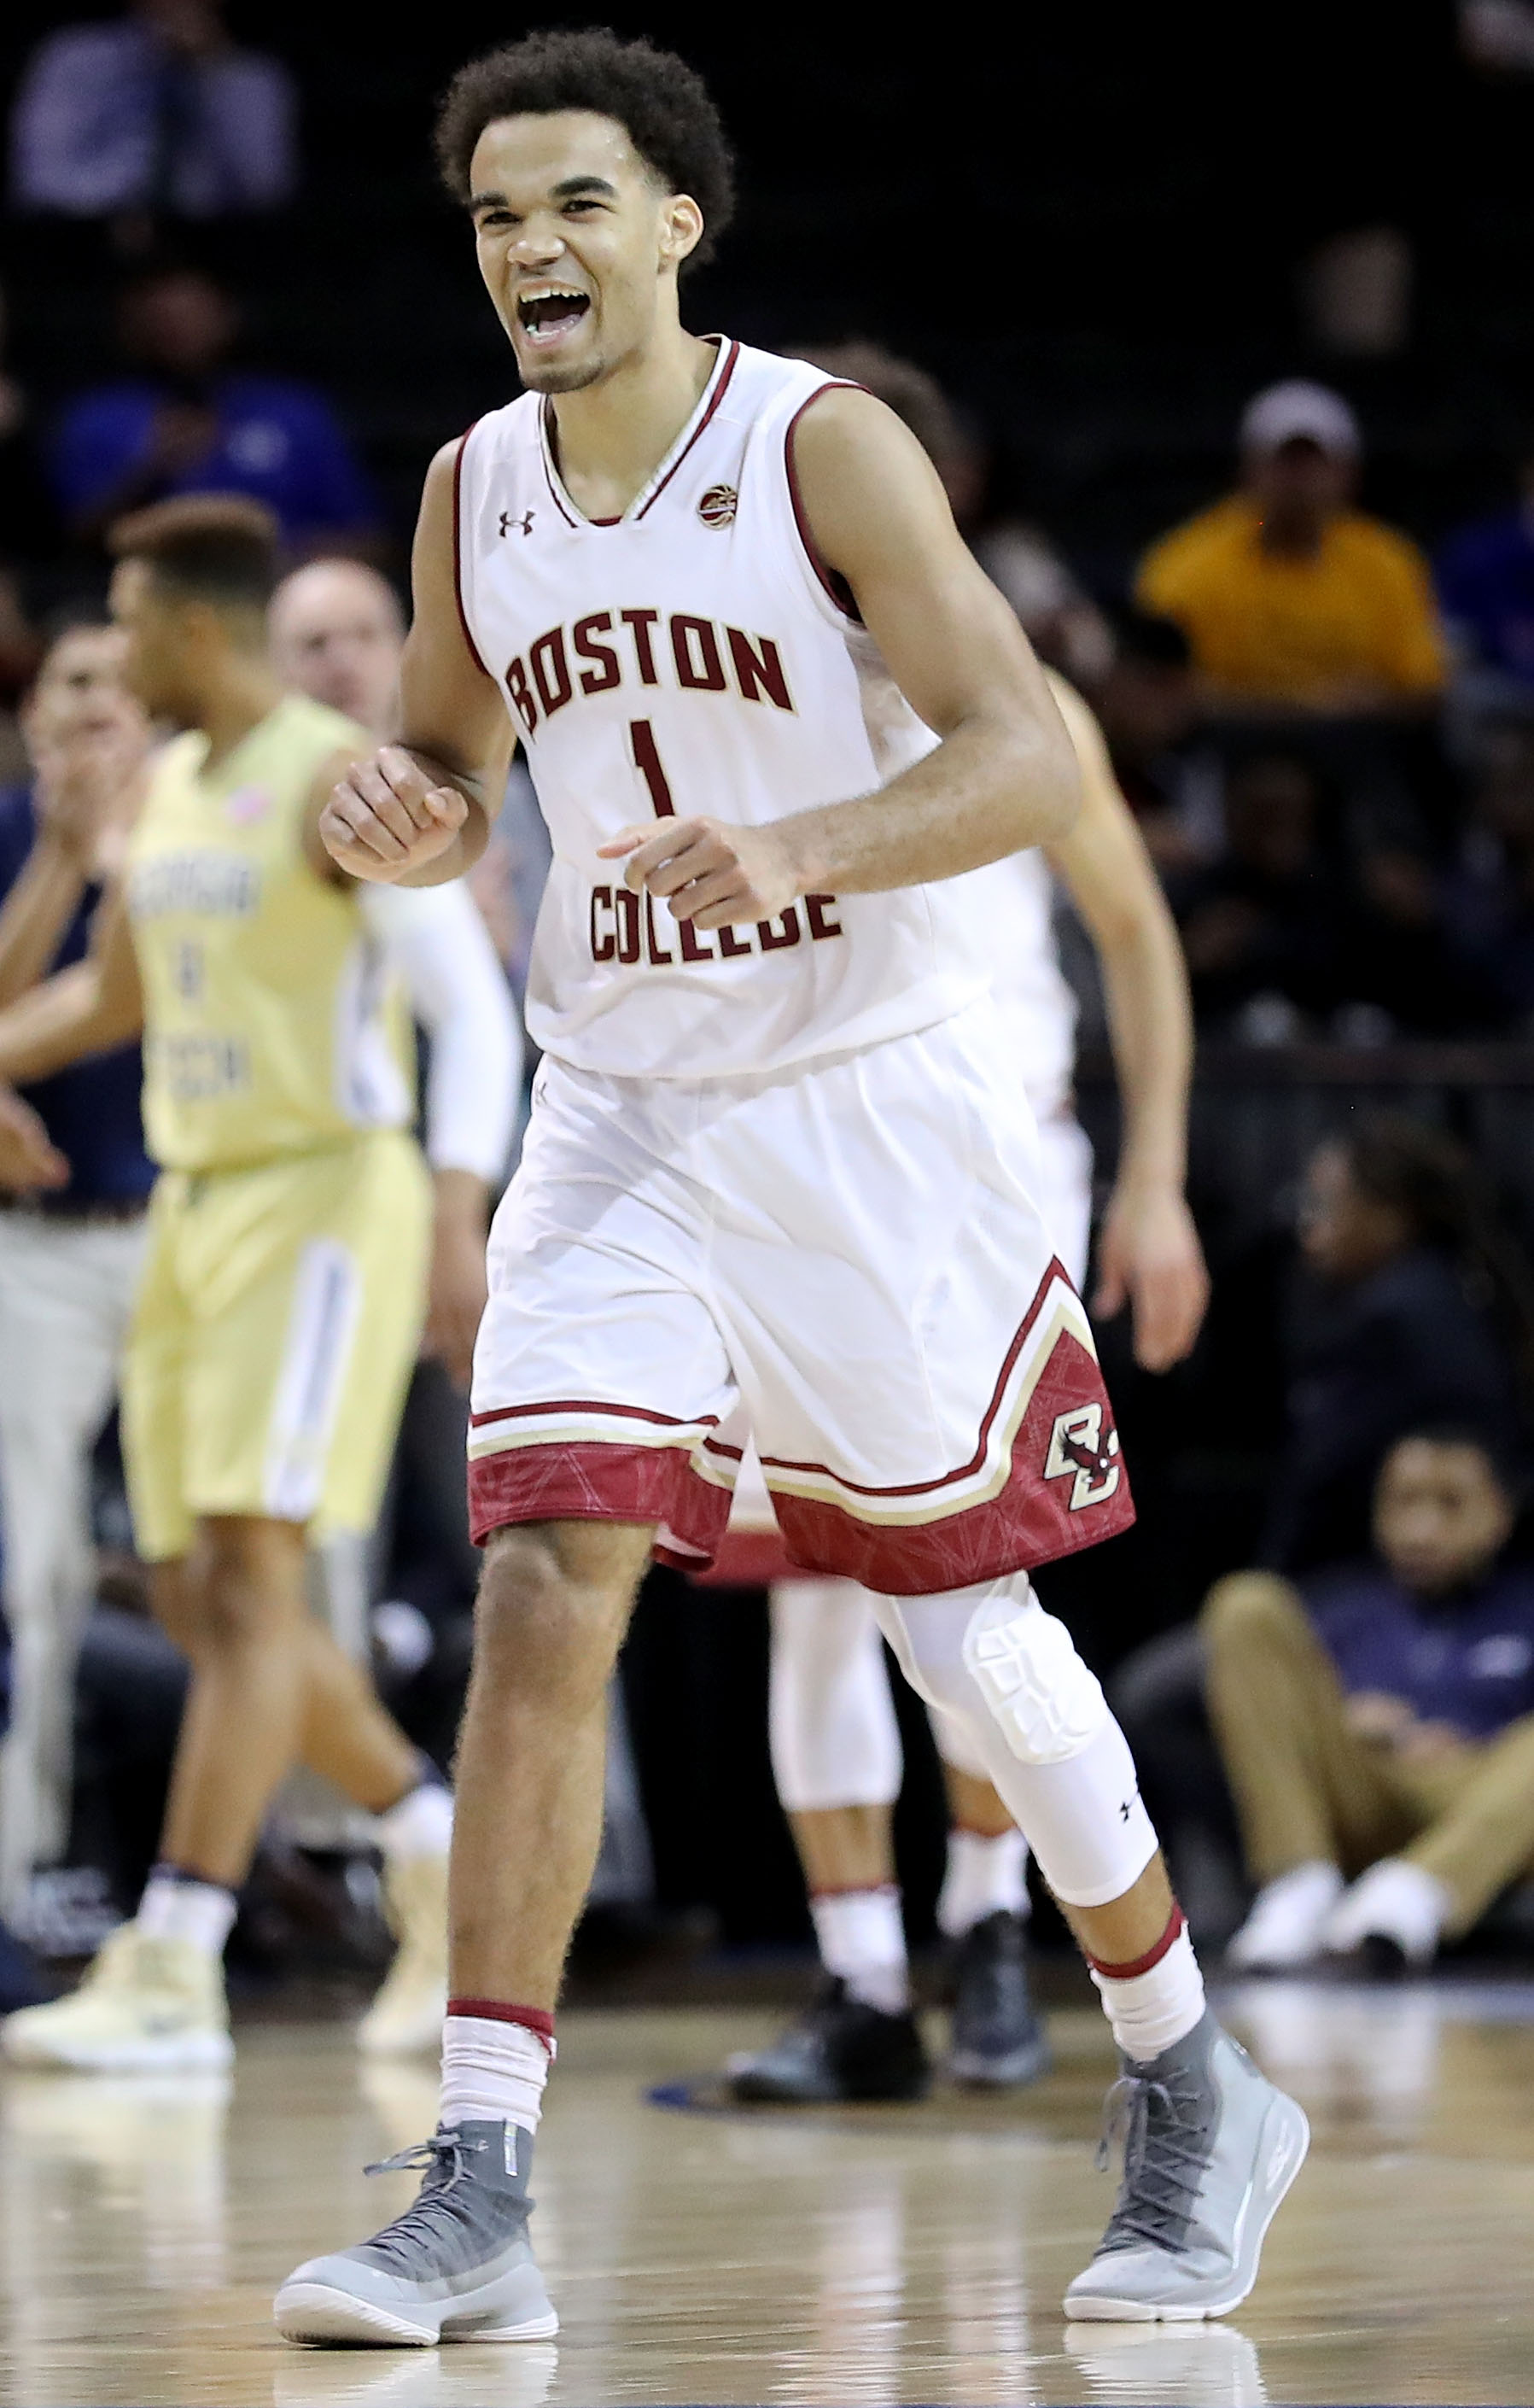 f5c23b2f2dc0 Boston College Basketball s Jerome Robinson Drafted by Clippers at 13th  Overall